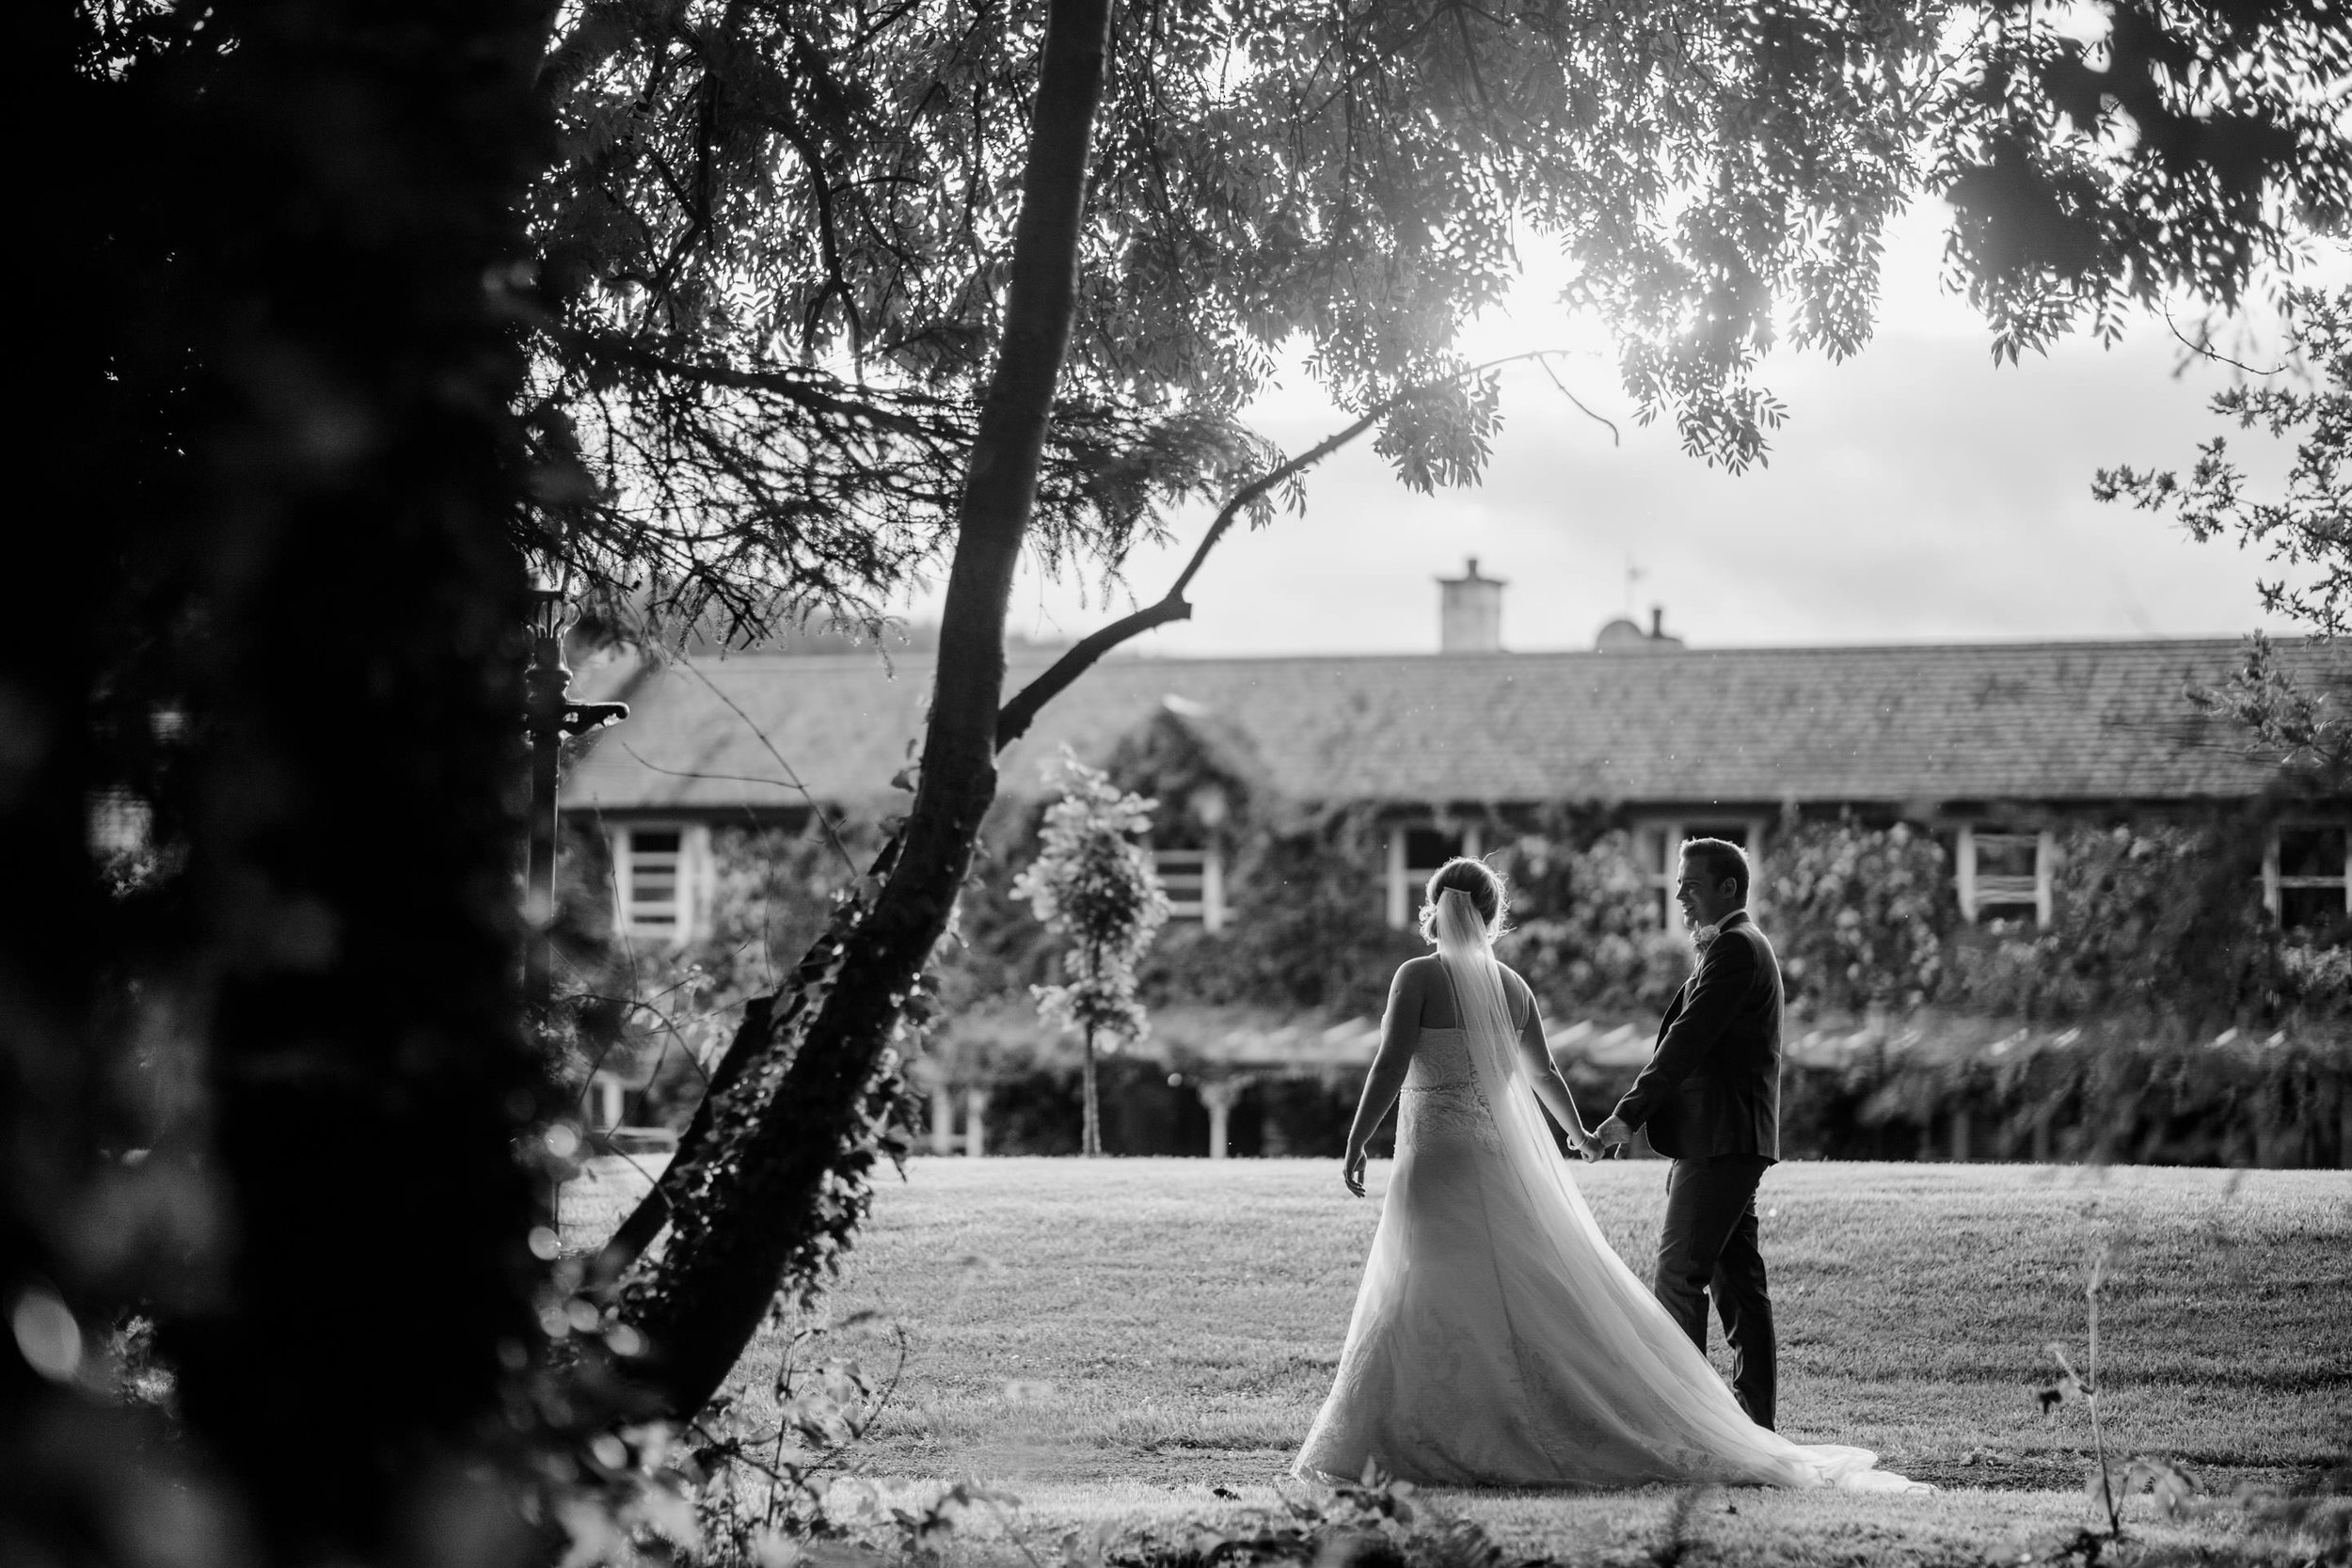 s&a_brooklodge_wedding_photographer_livia_figueiredo_29.jpg